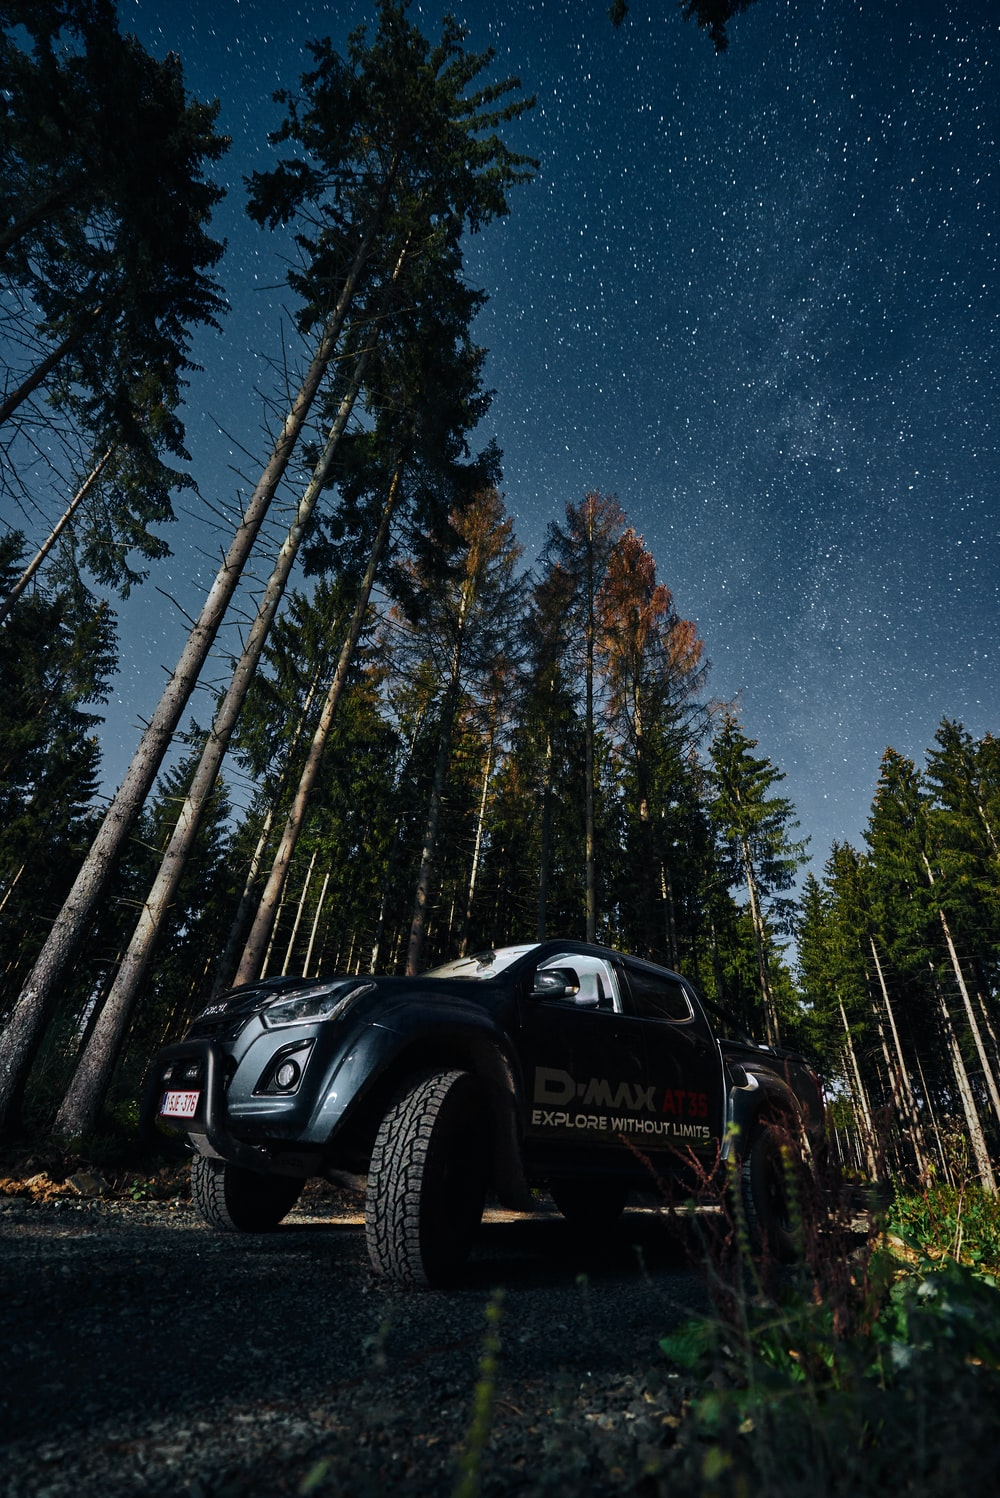 black Isuzu D-Max parked near forest trees during night time